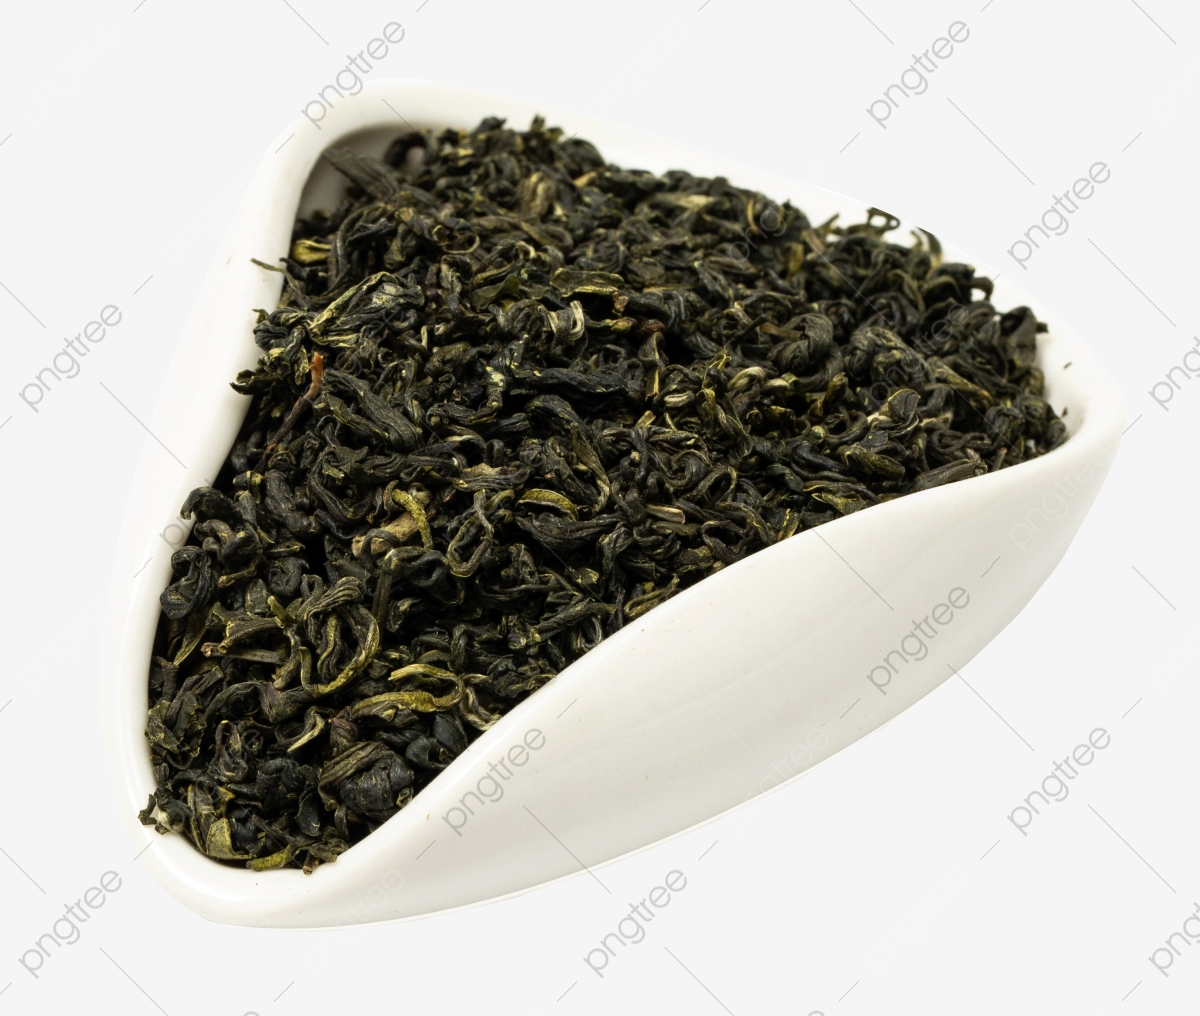 A Bowl Of Dry Tea Spring Tea Health Tea A Cup Of Tea Health Tea Dry Tea Png Transparent Clipart Image And Psd File For Free Download